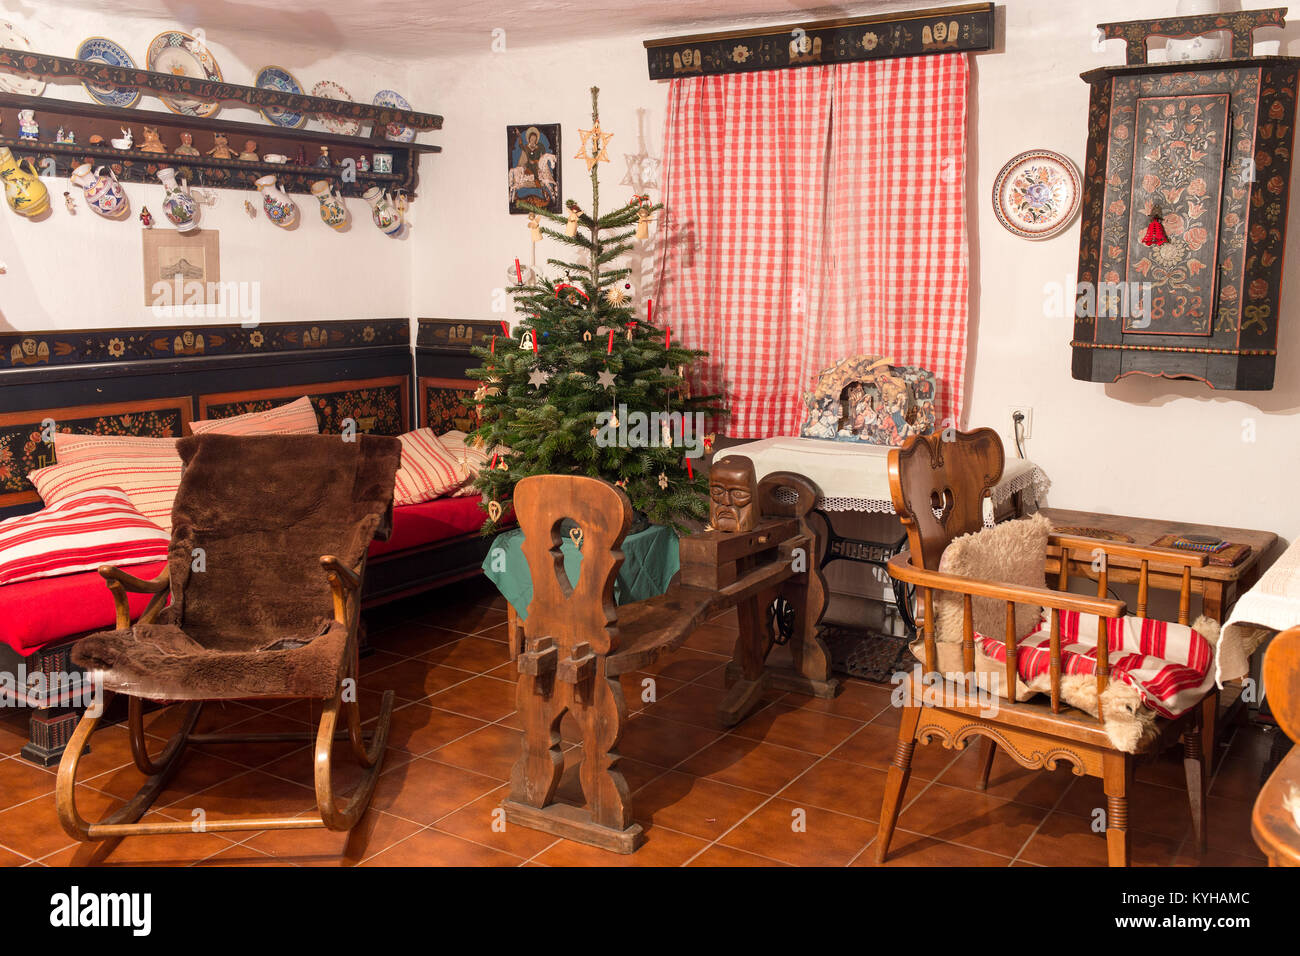 Decorated Christmas Tree Inside A Rural House In The South Bohemian Folk Or Baroque Style Nahorany Village Bohemia Czech Rep